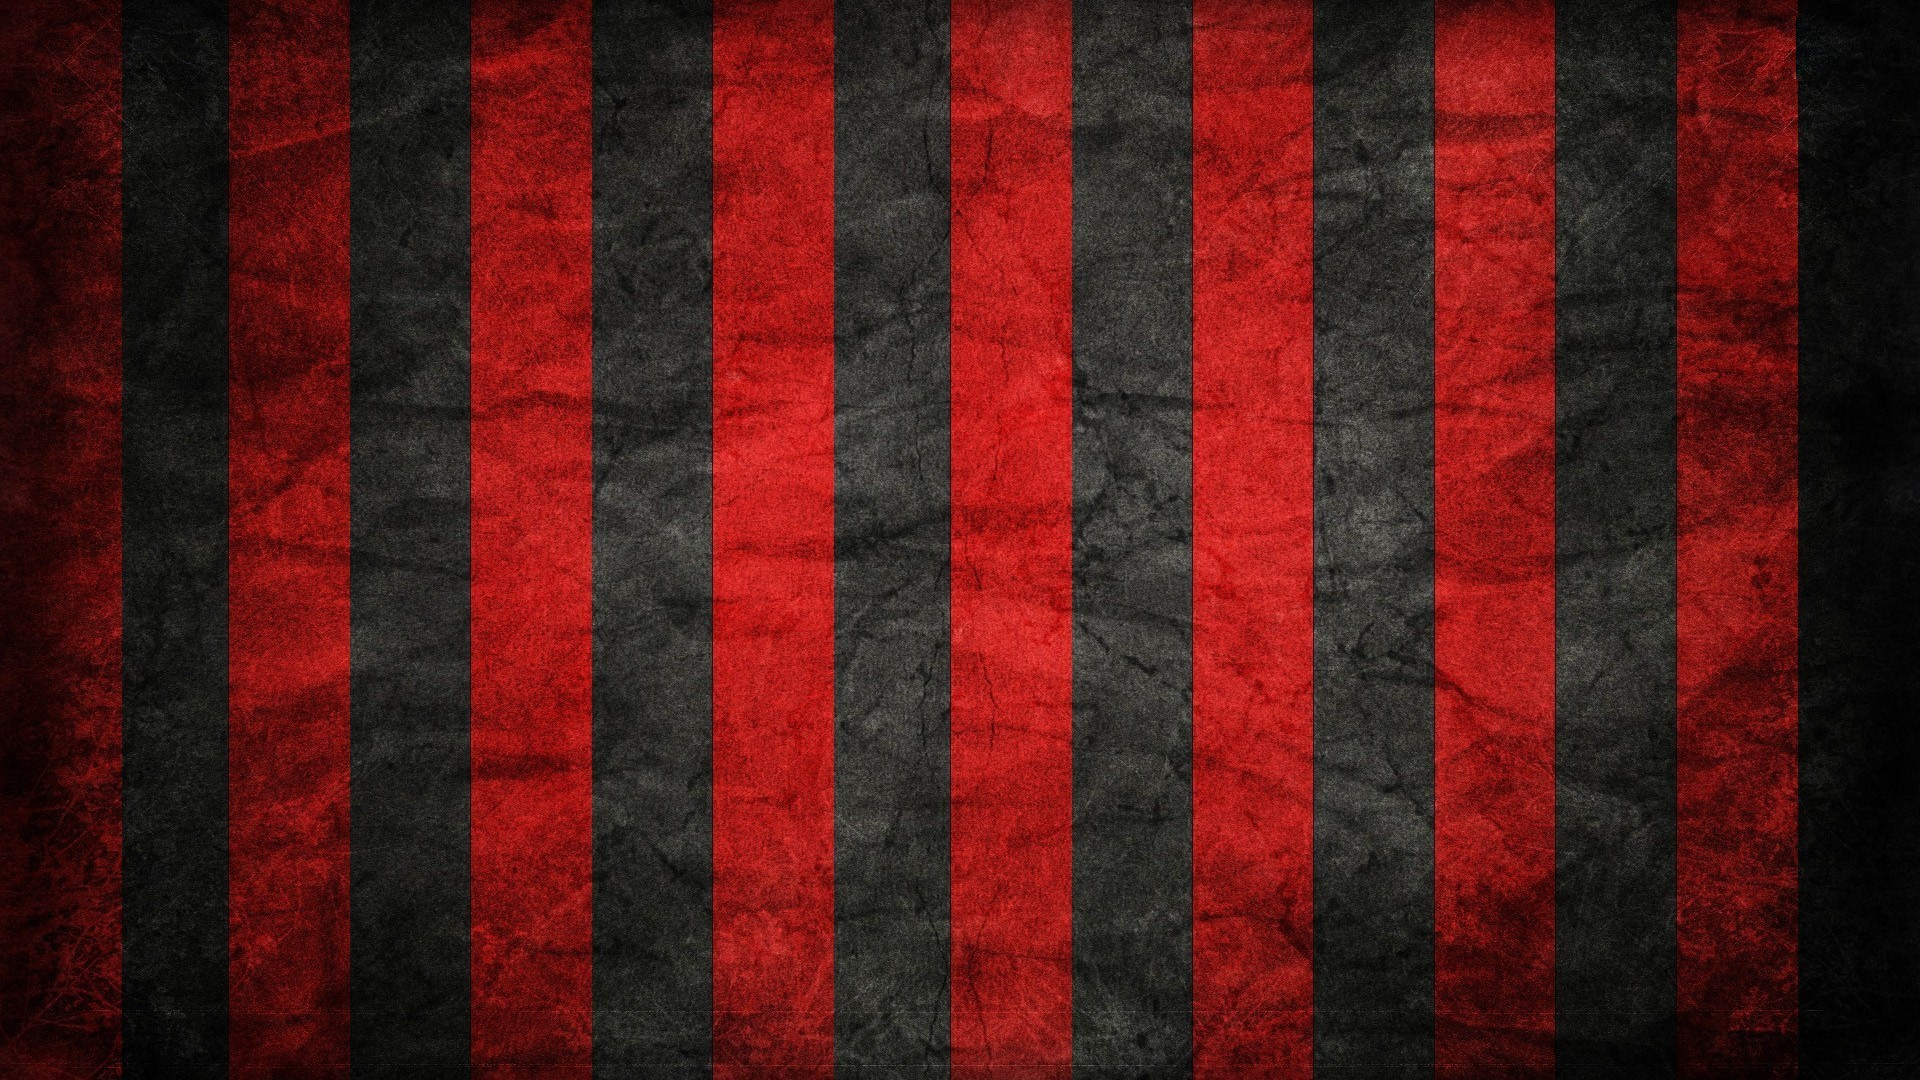 50 Red And Black Backgrounds Download Free Amazing